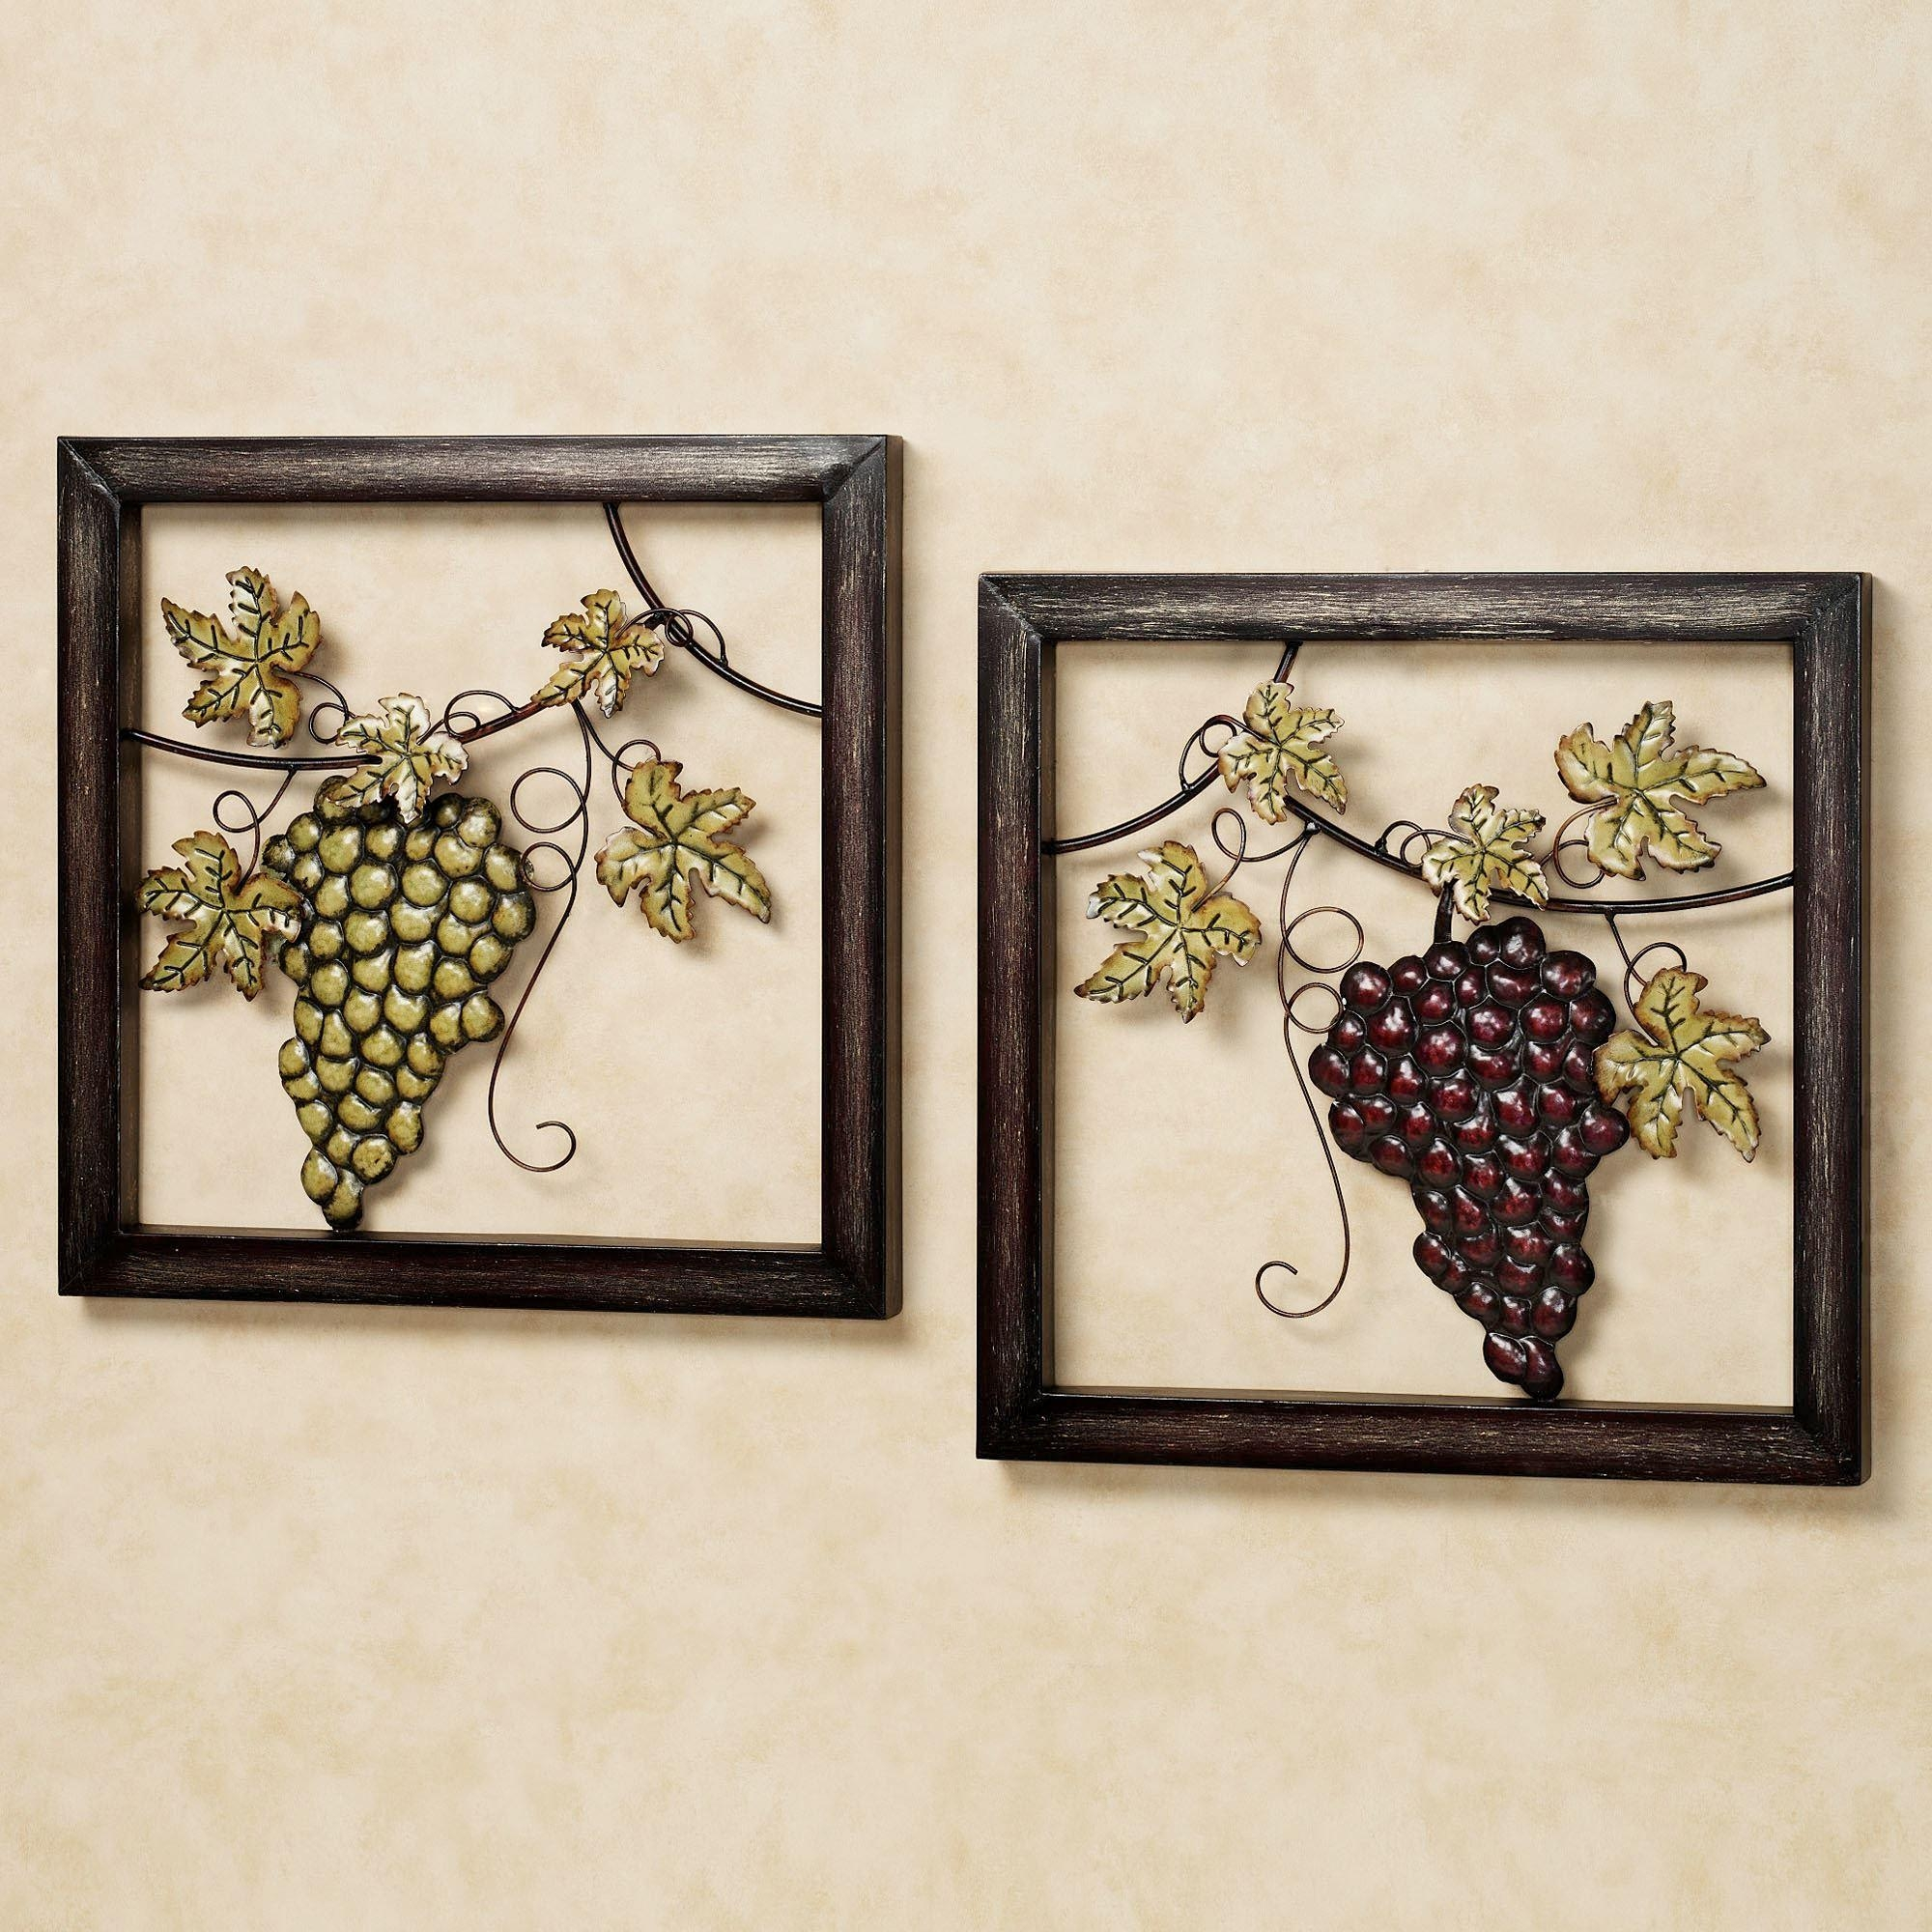 Zspmed Of Wine Wall Art Pertaining To Grape Wall Art (View 10 of 20)